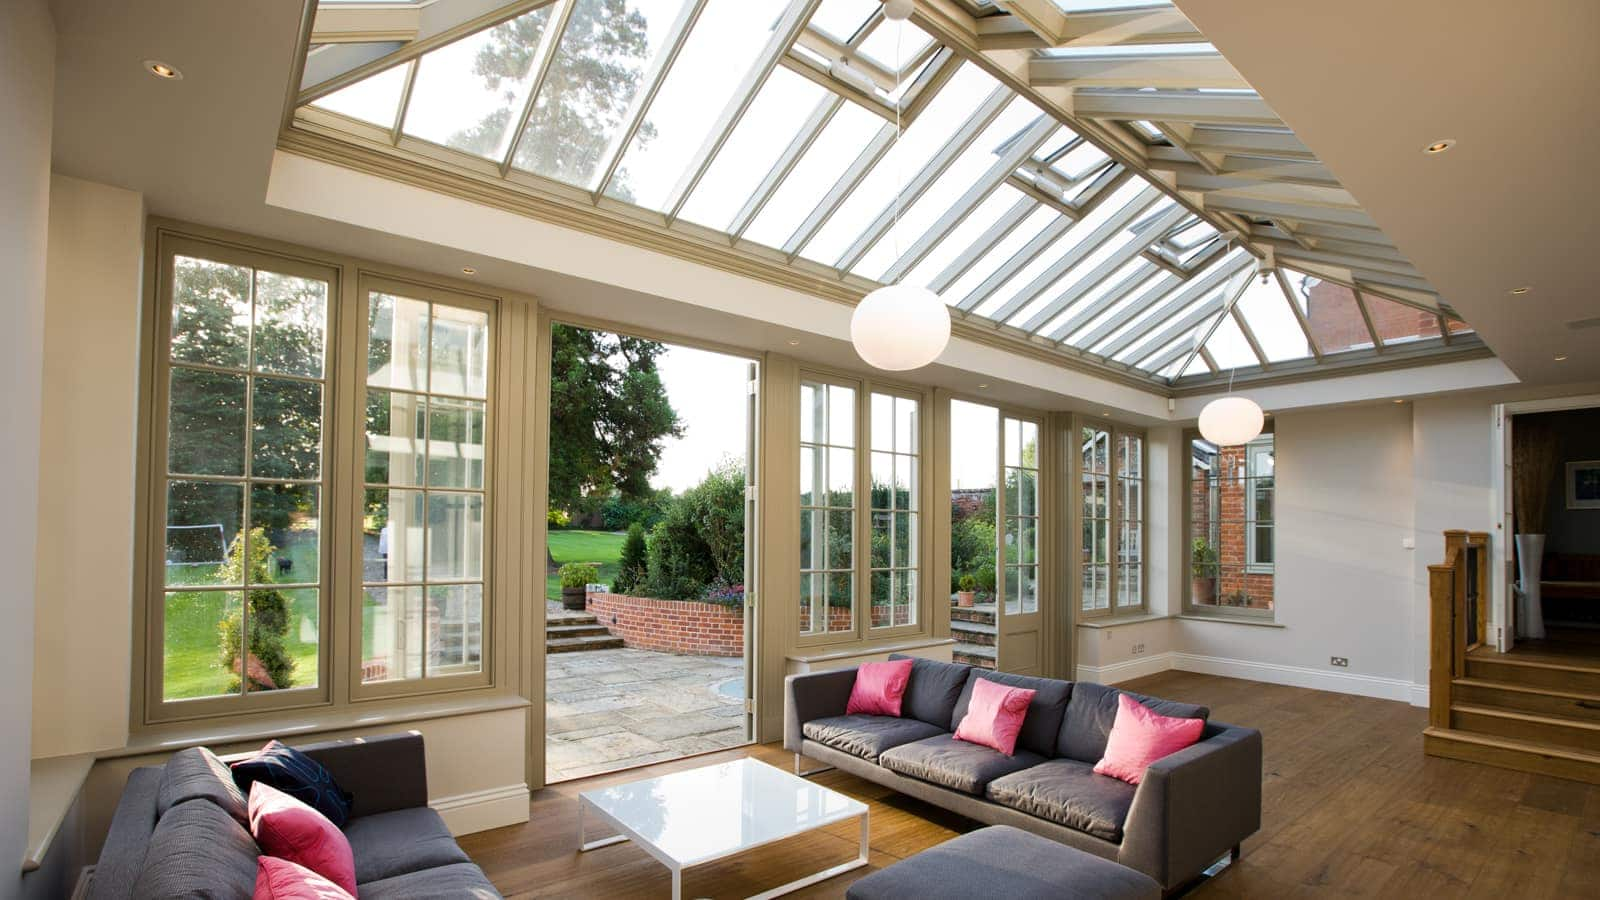 Interior shot of lounge area inside orangery extension with large timber roof lantern